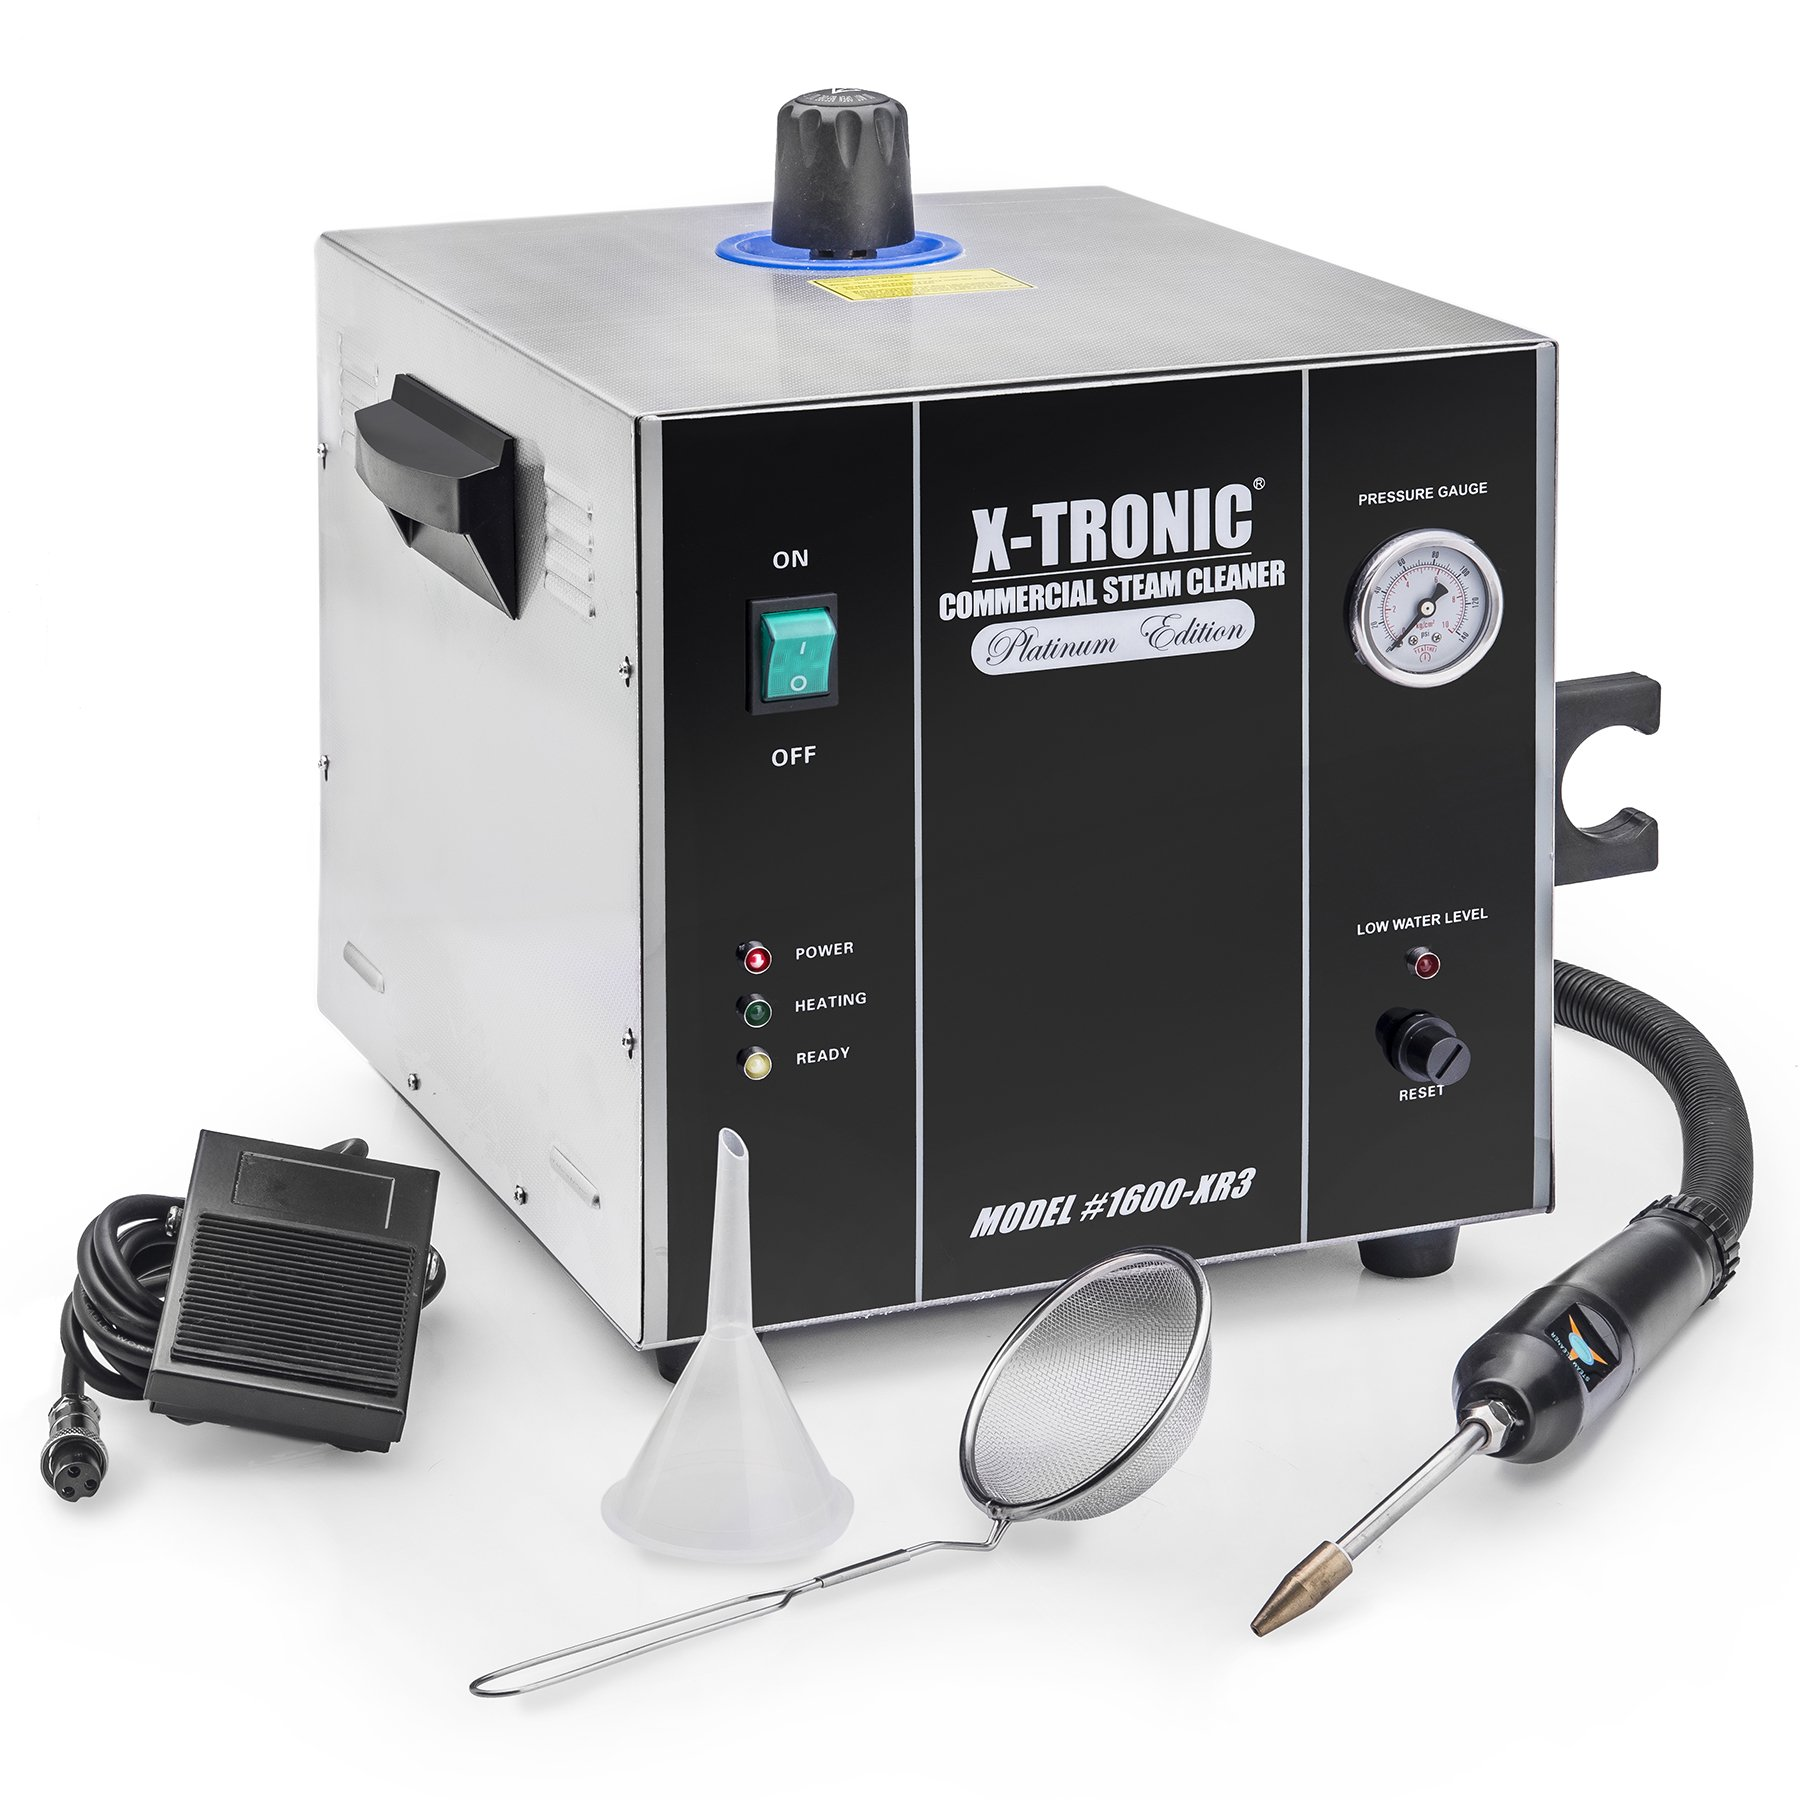 X-Tronic Model #1600-XR3 - 2 Liter Commercial Jewelry Steamer Steam Cleaner - Includes: Steam Gun with 48'' Hose, Side Gun Holder, Steam Control by Foot Pedal or Gun Nozzle, Cleaning Basket & Funnel